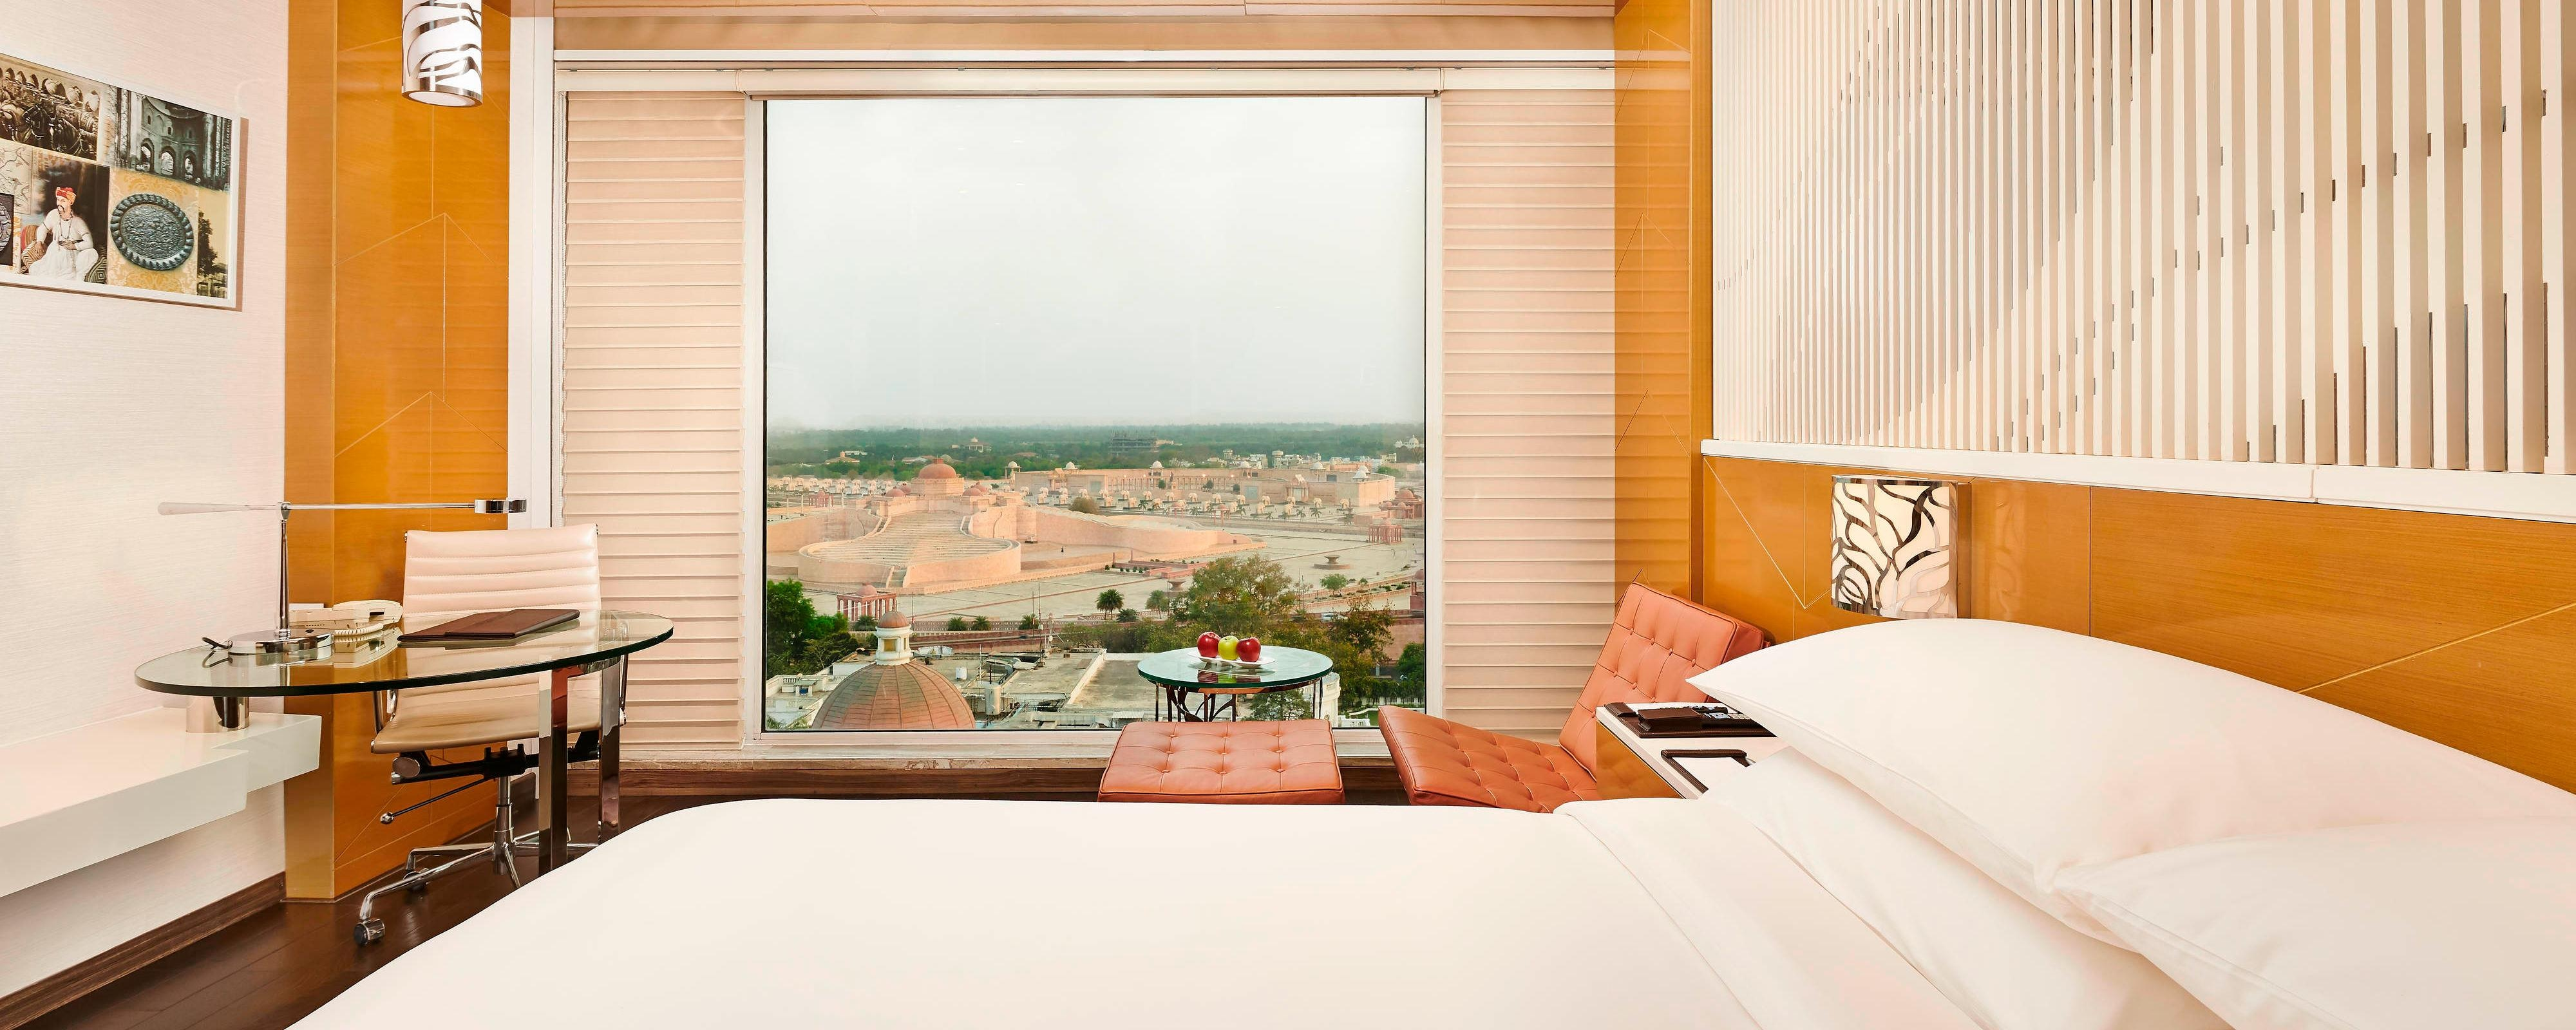 4 Star Hotel In Lucknow India Renaissance Lucknow Hotel